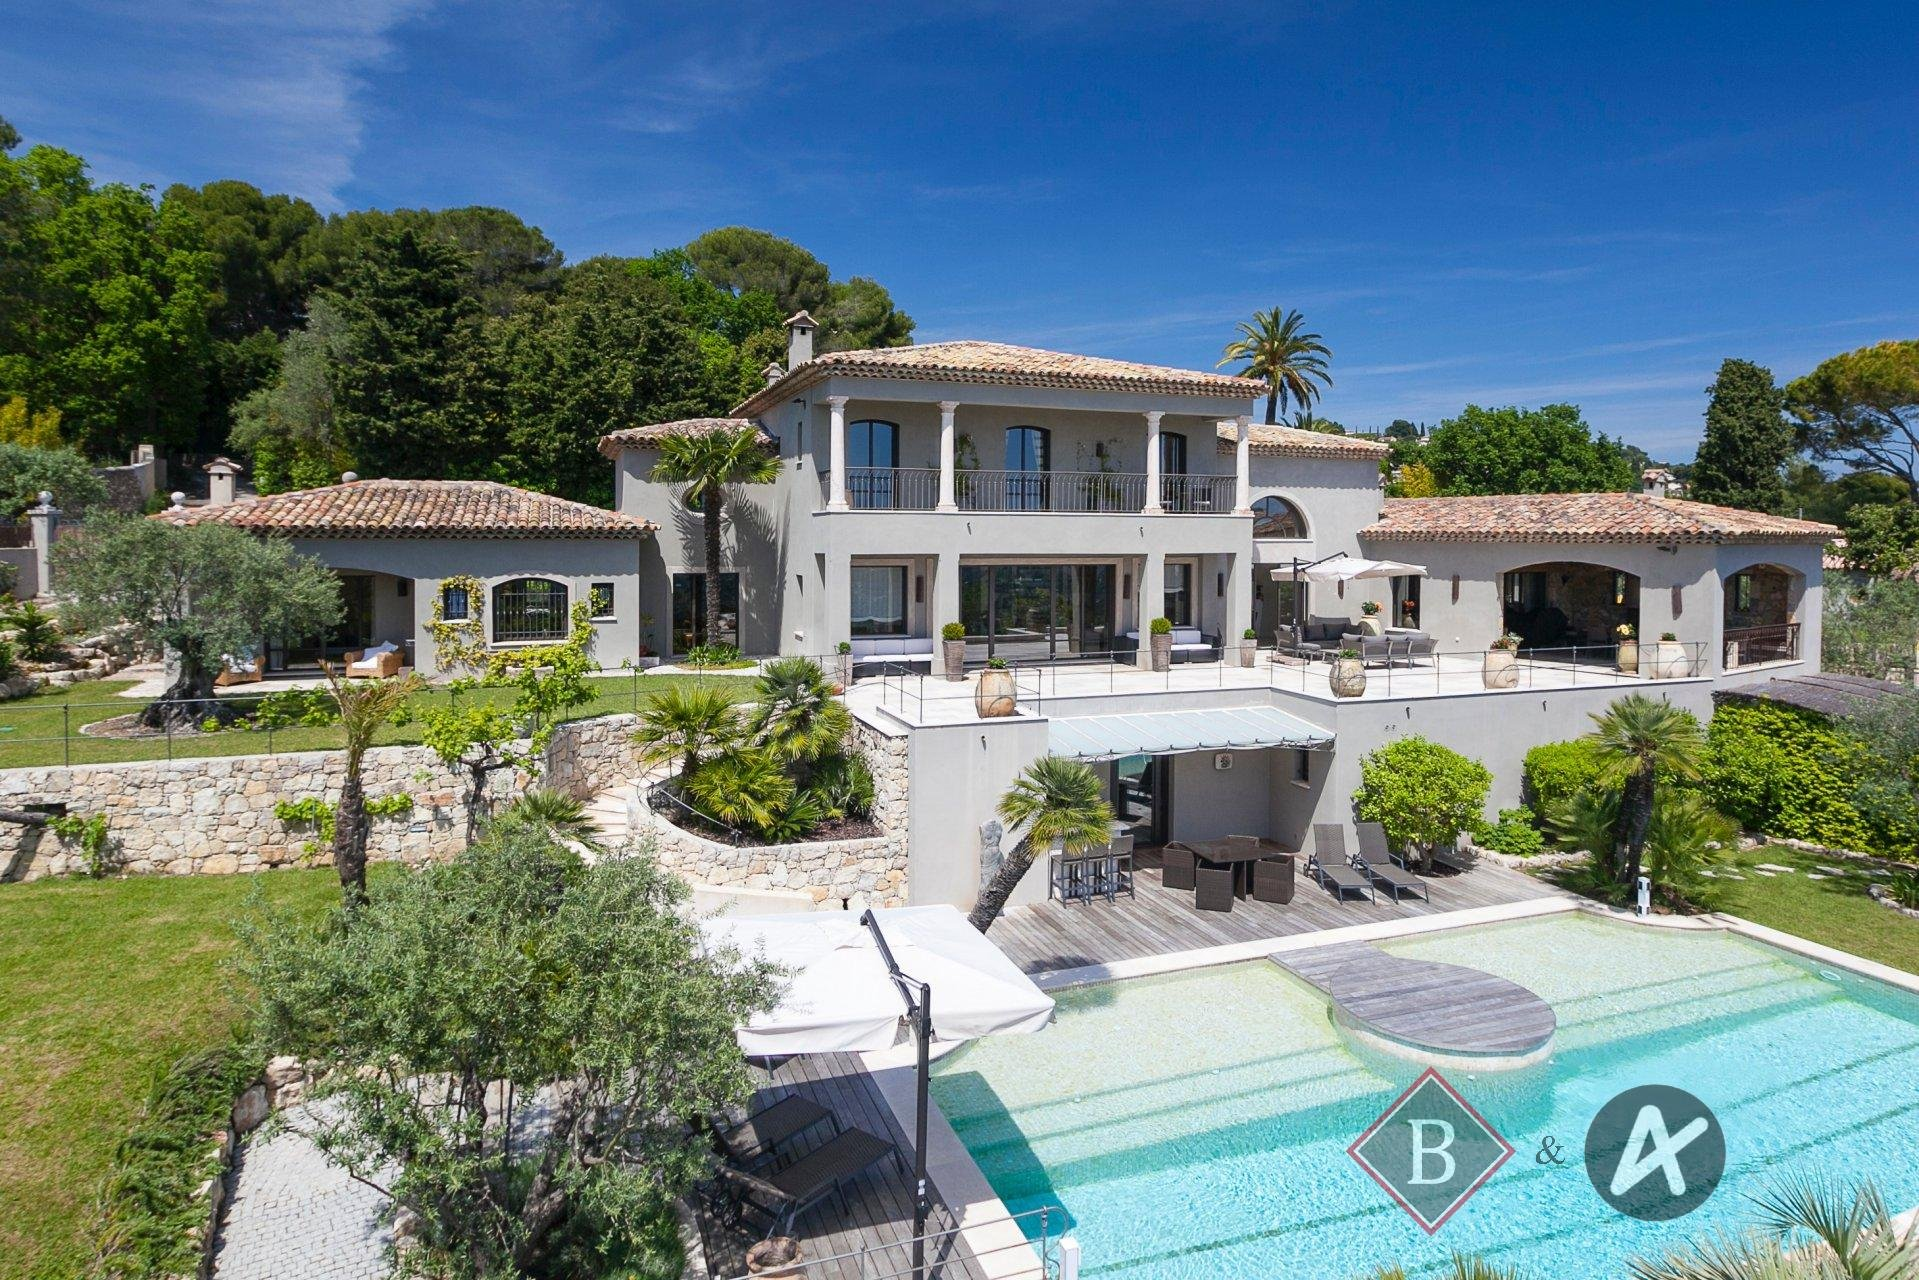 For sale - Luxury property, haven of peacefulness close to Cannes